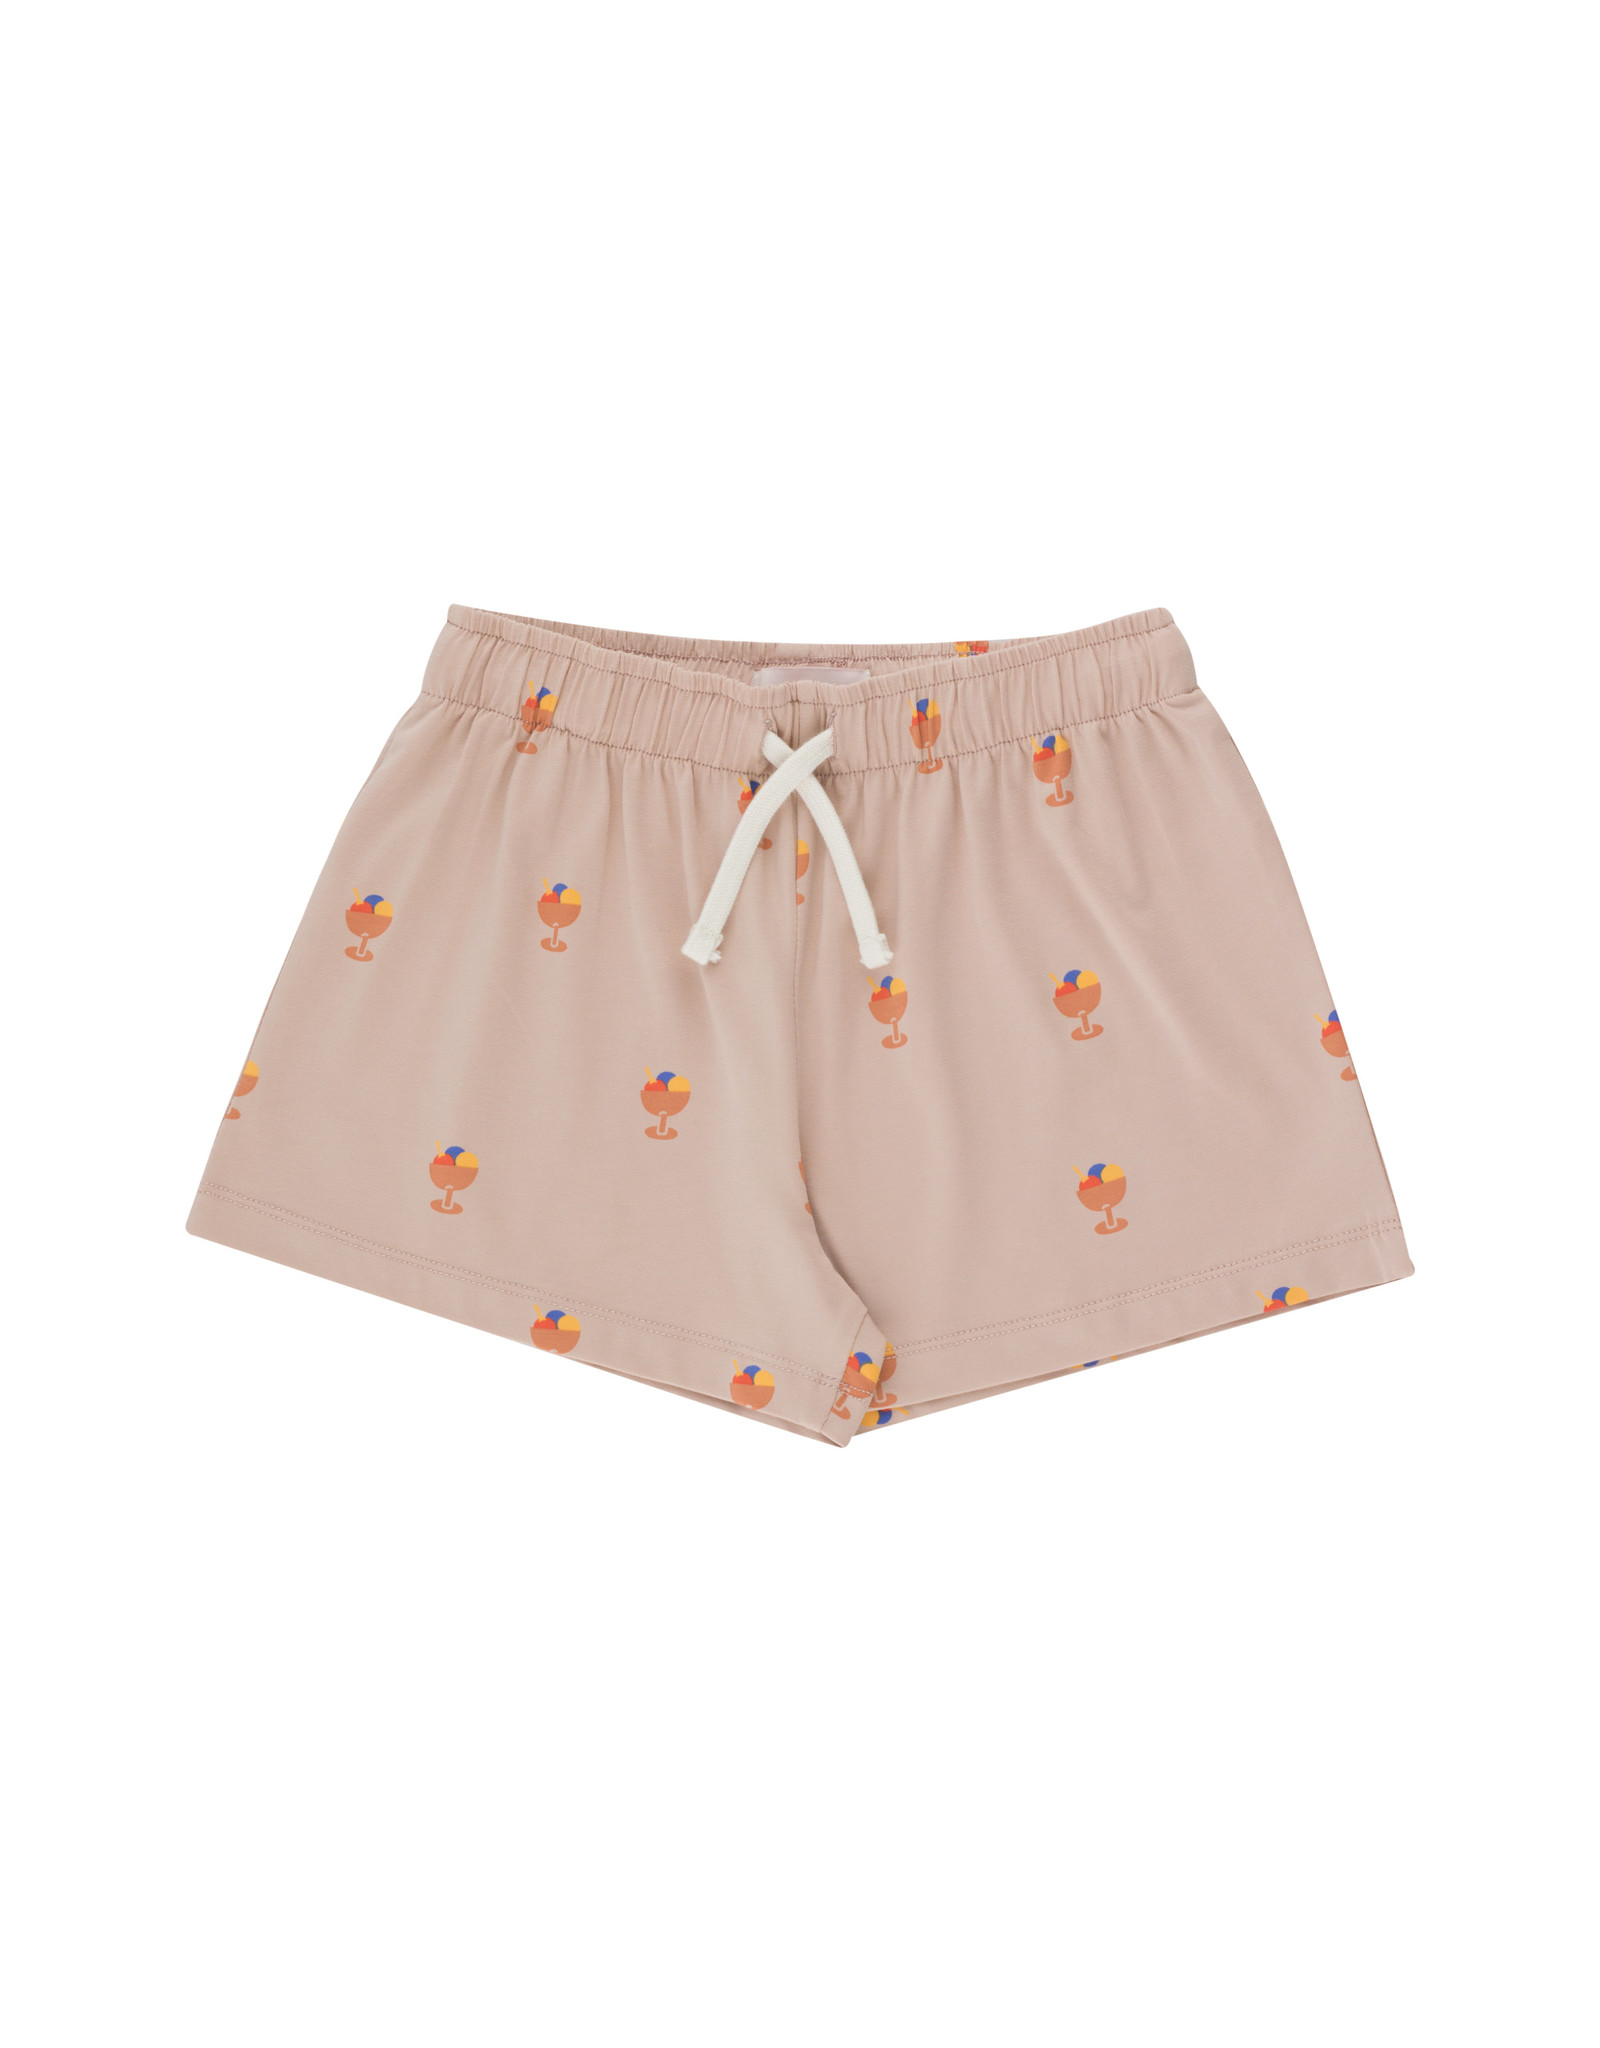 Tinycottons Ice Cream Cup Short